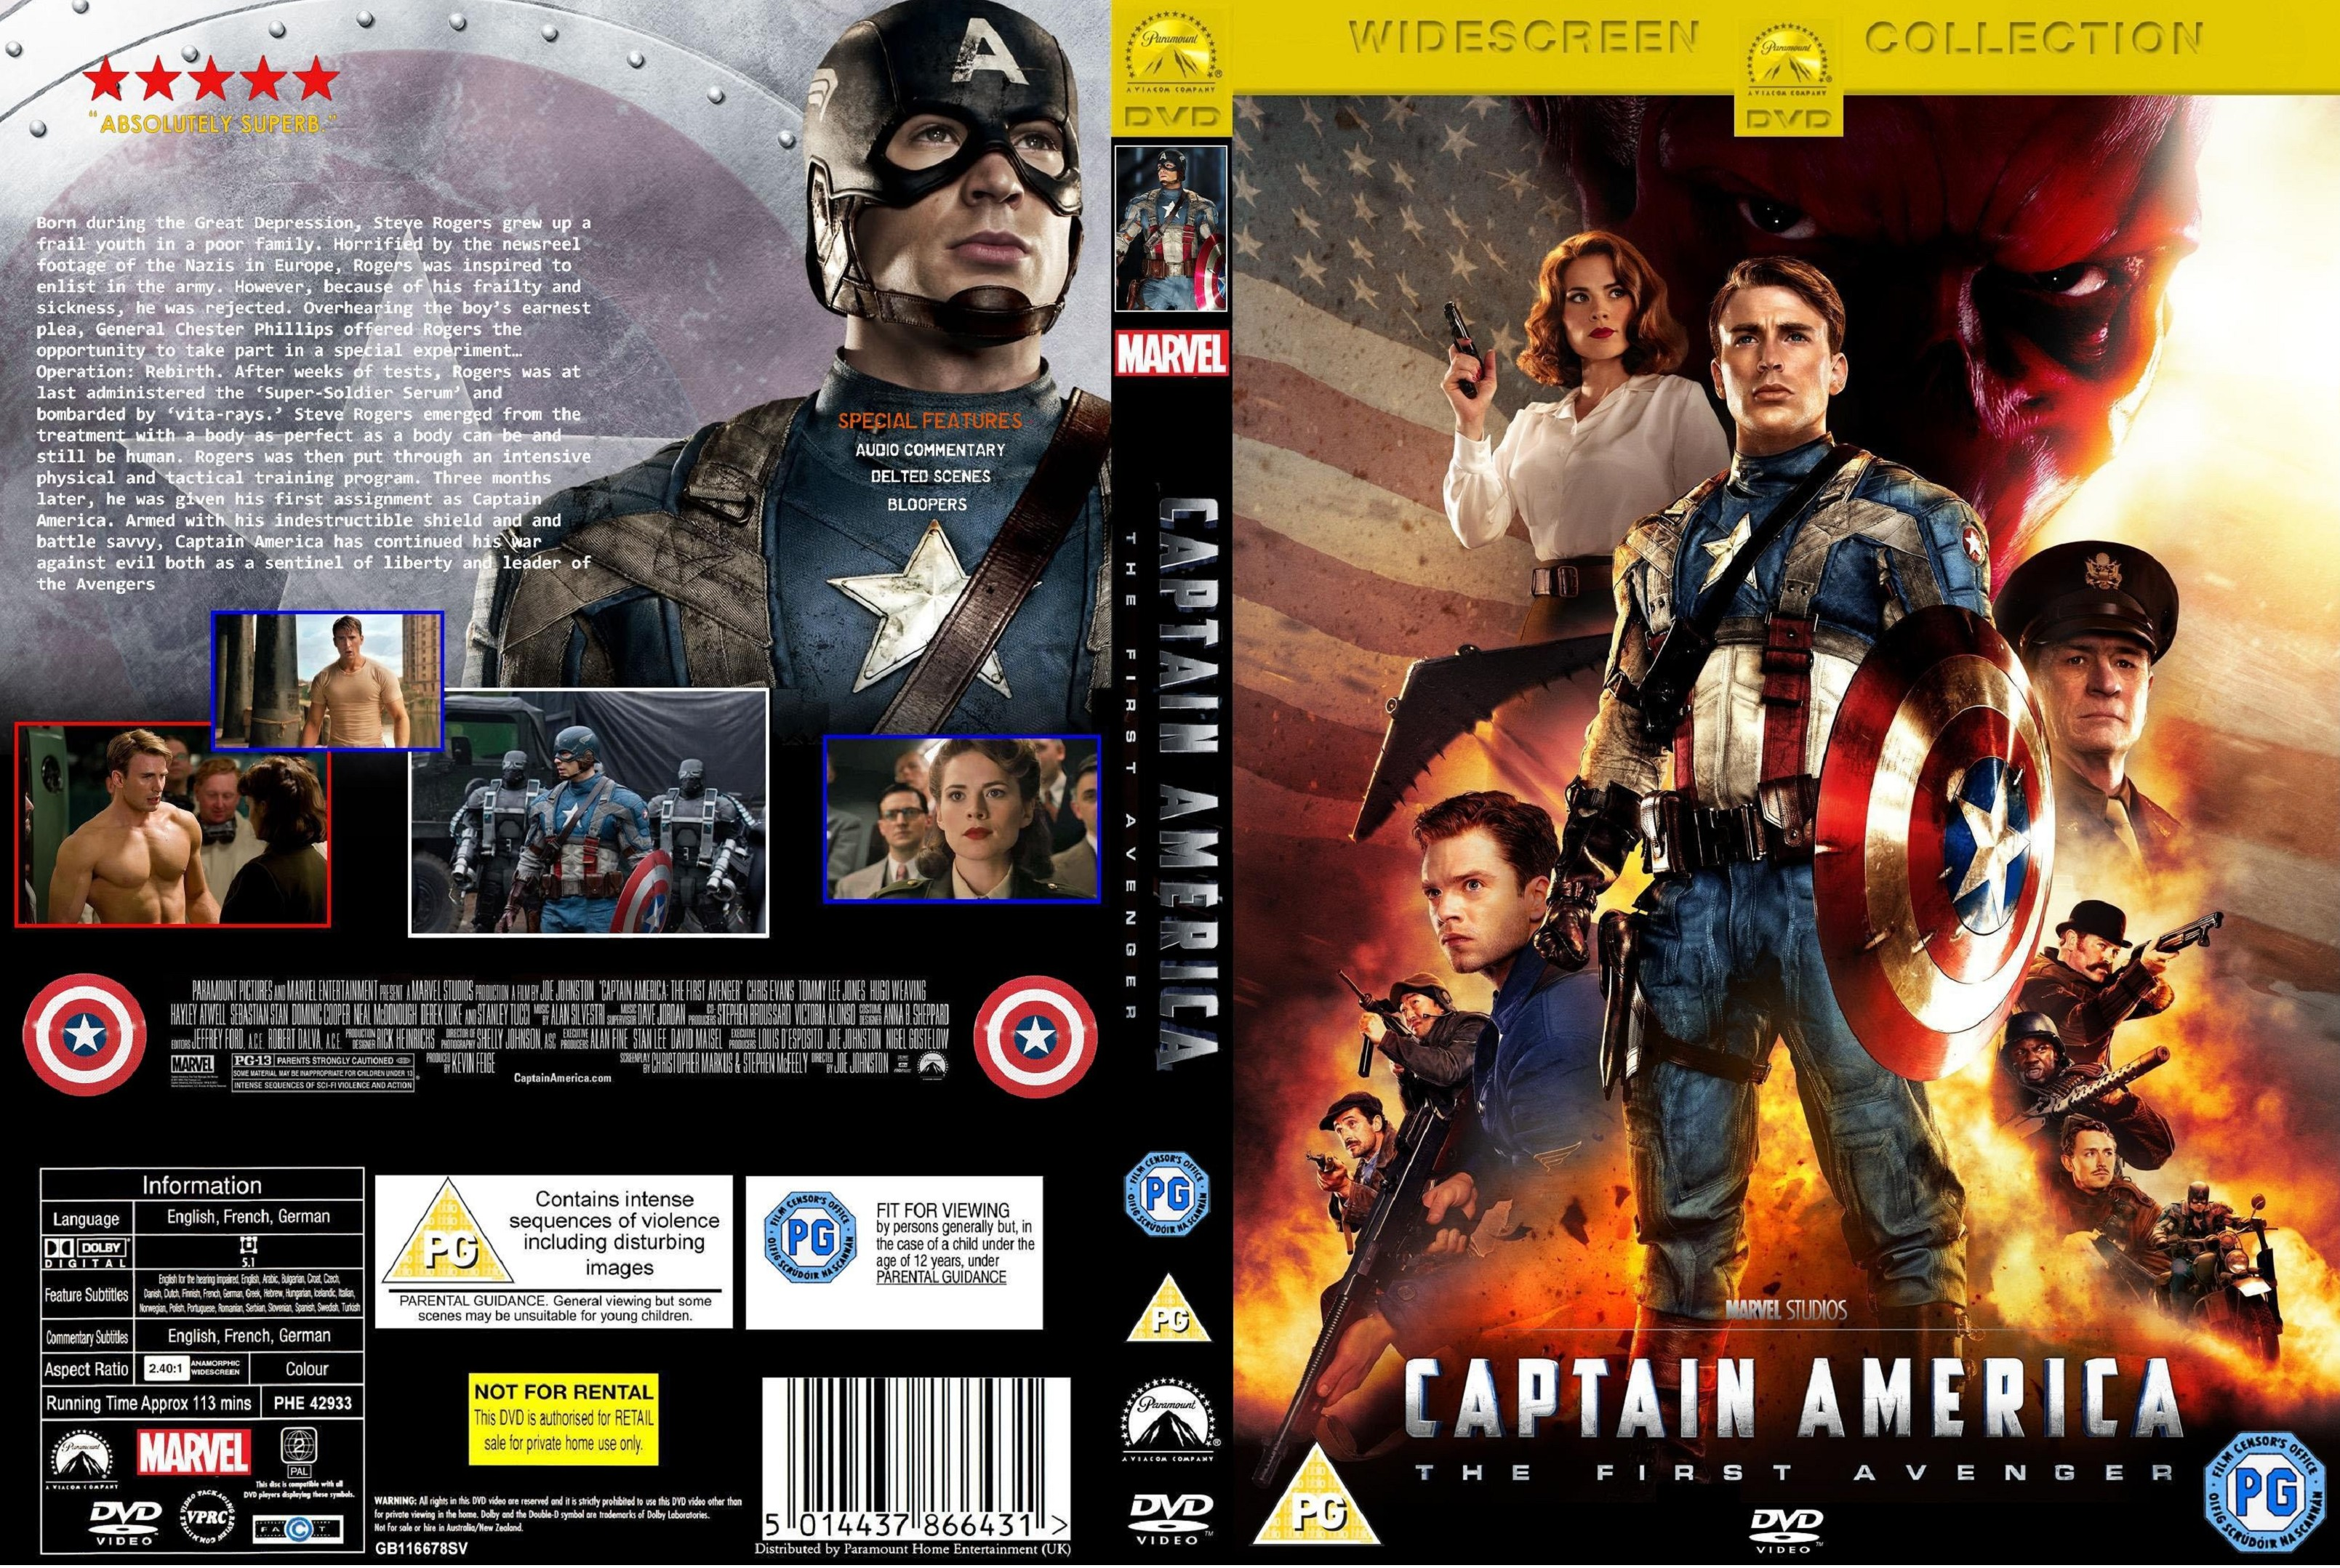 Covers Box Sk Captain America The First Avenger 2011 High Quality Dvd Blueray Movie